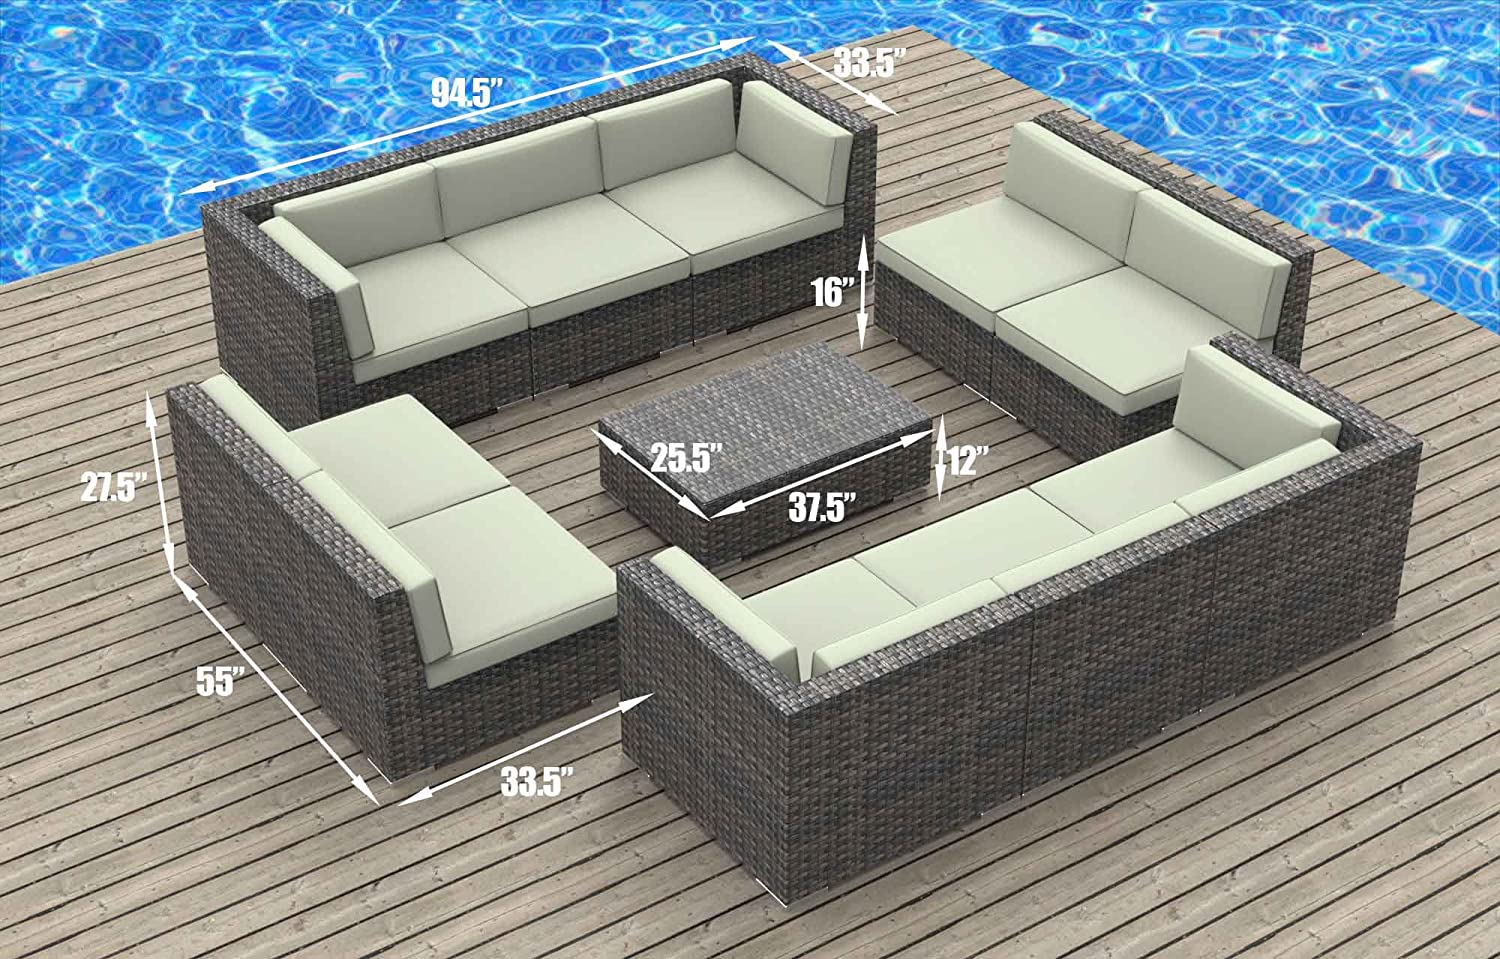 Amazon.com : UrbanFurnishing.net 11a Bermuda Charcoal 11 Piece Modern Patio  Furniture Sofa Sectional Couch Set : Outdoor And Patio Furniture Sets :  Garden U0026 ...